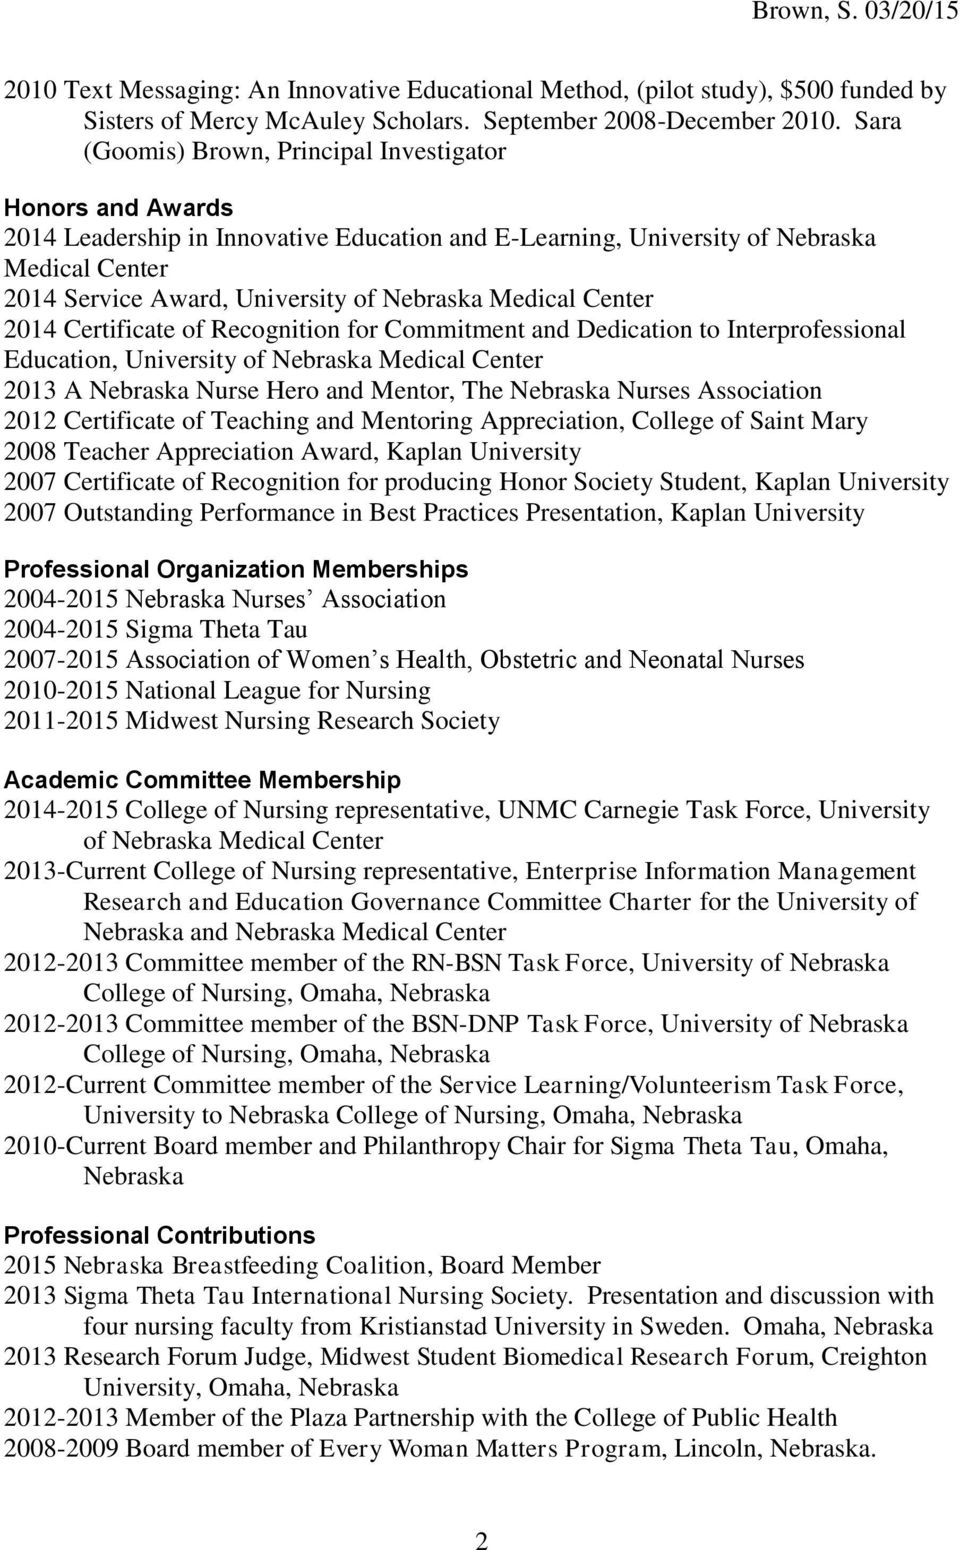 Medical Center 2014 Certificate of Recognition for Commitment and Dedication to Interprofessional Education, University of Nebraska Medical Center 2013 A Nebraska Nurse Hero and Mentor, The Nebraska